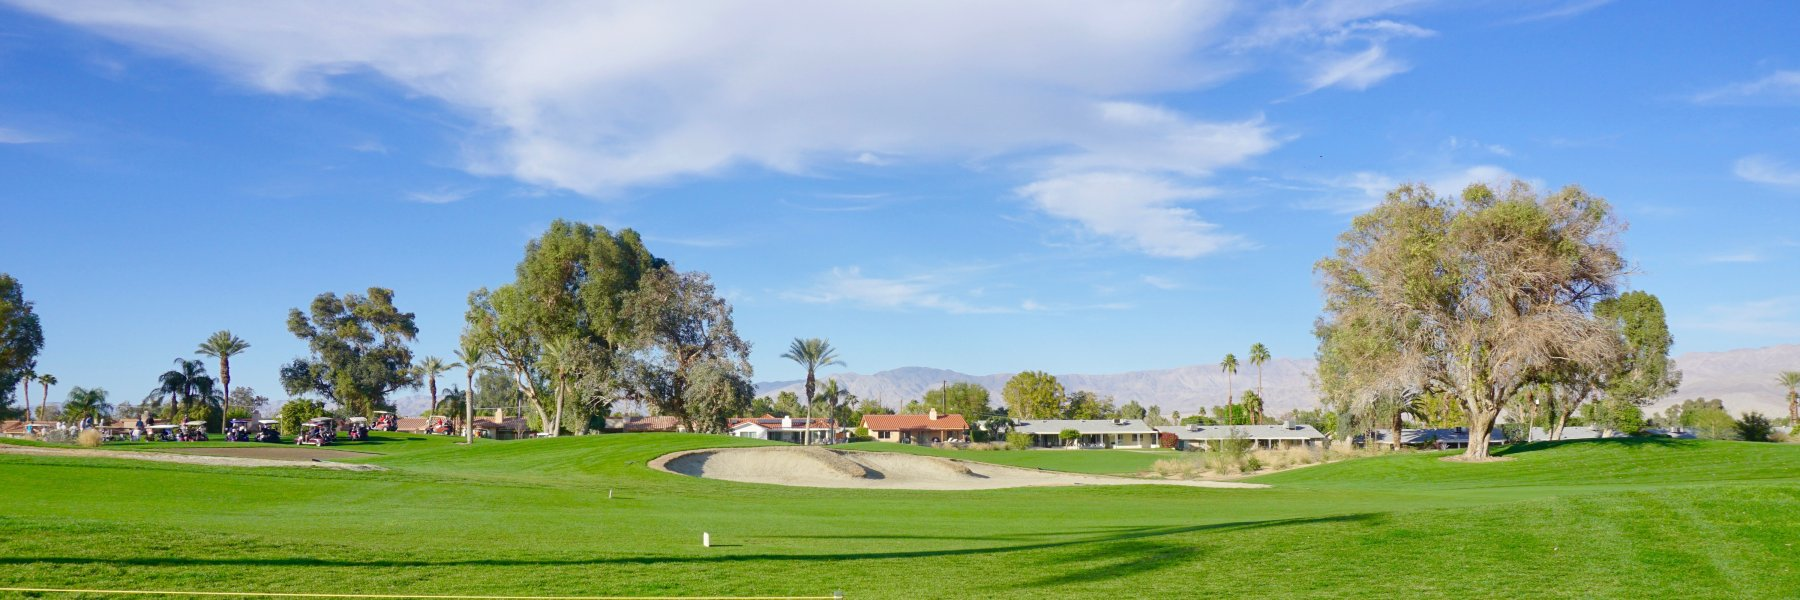 Palm Desert Country Club is a community of homes in Palm Desert California